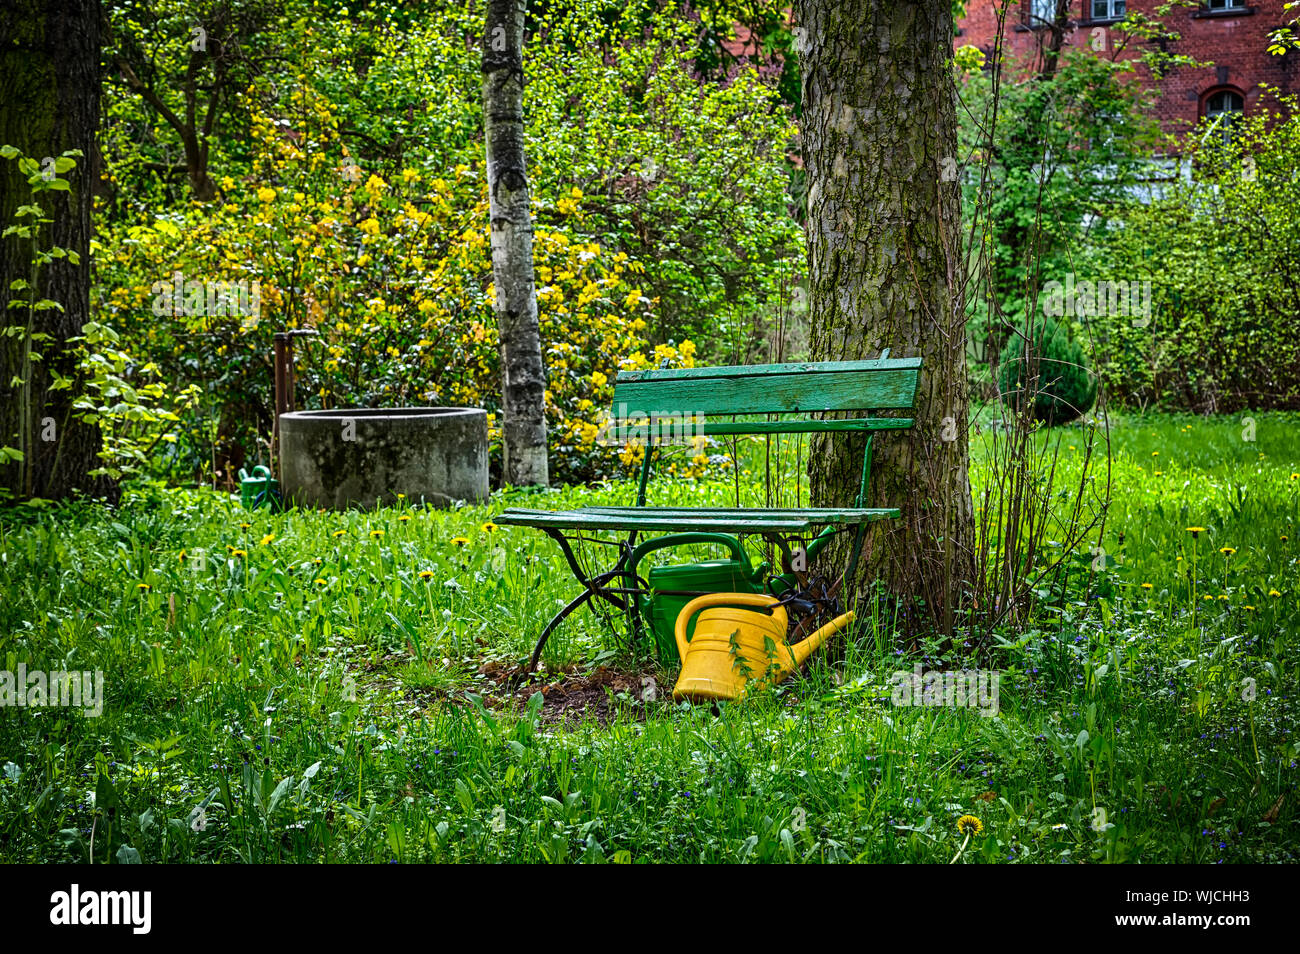 garden bench with yellow ewer. Stock Photo